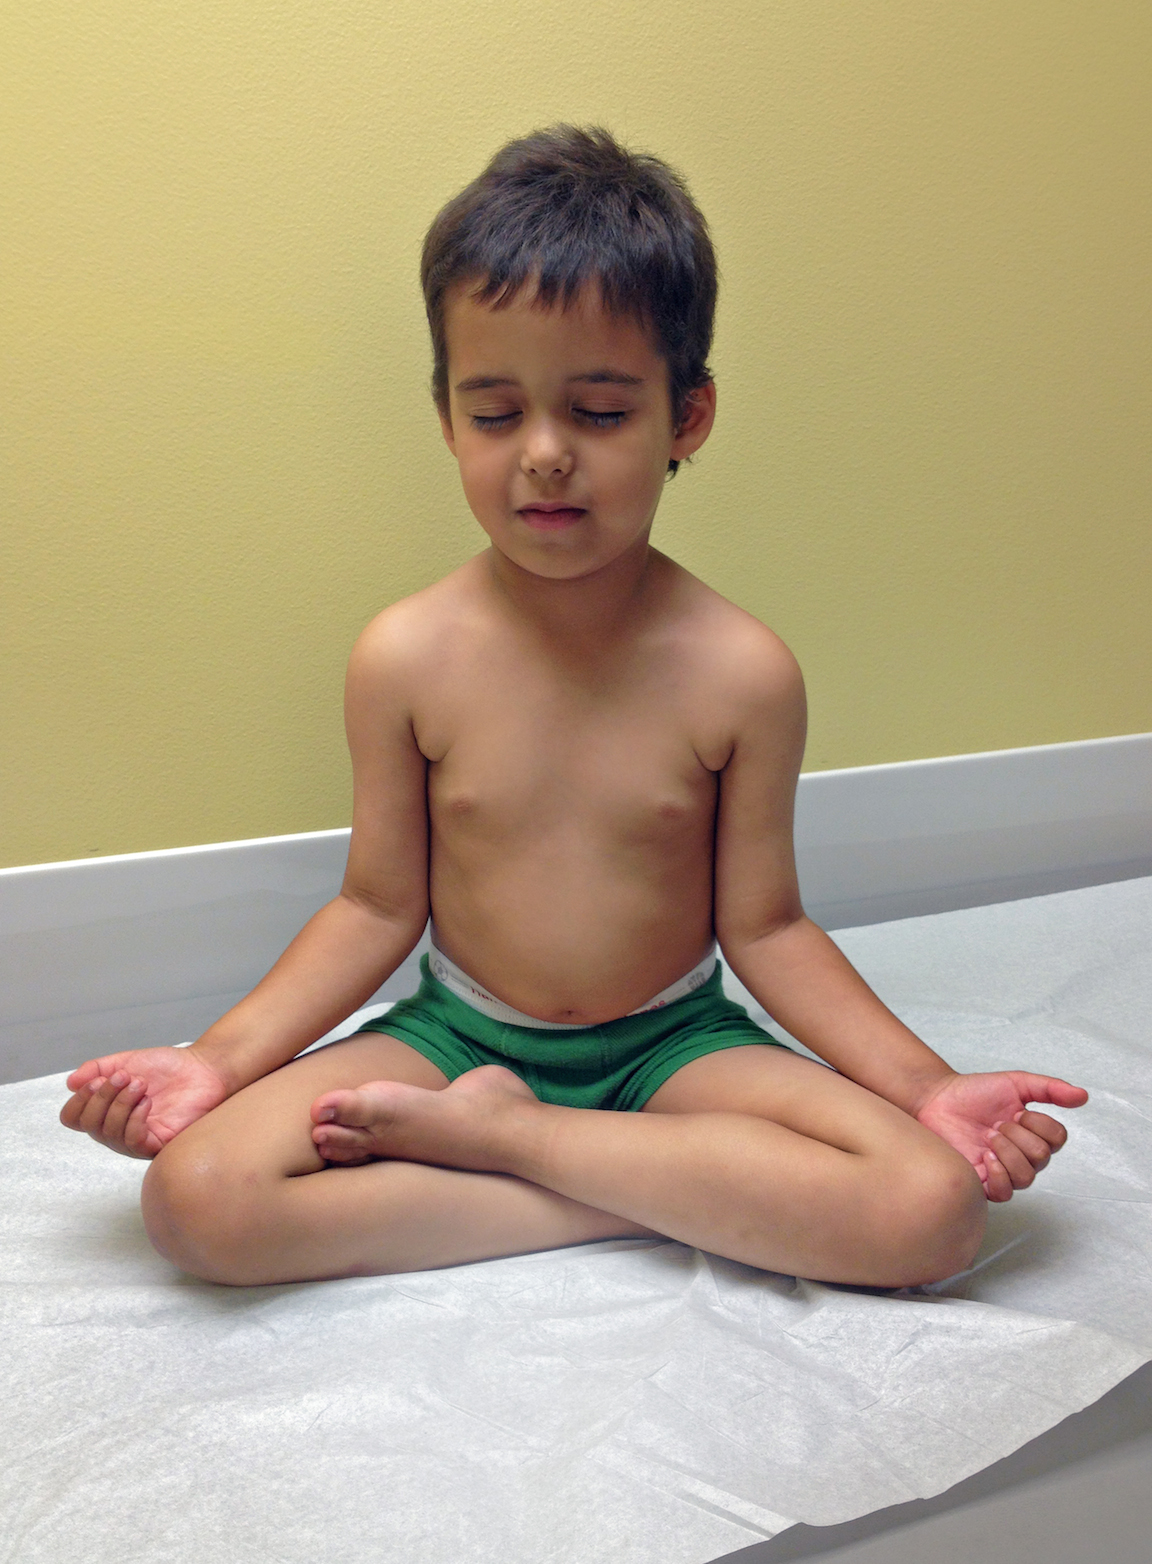 Judah using mindfulness at the Doctor's office